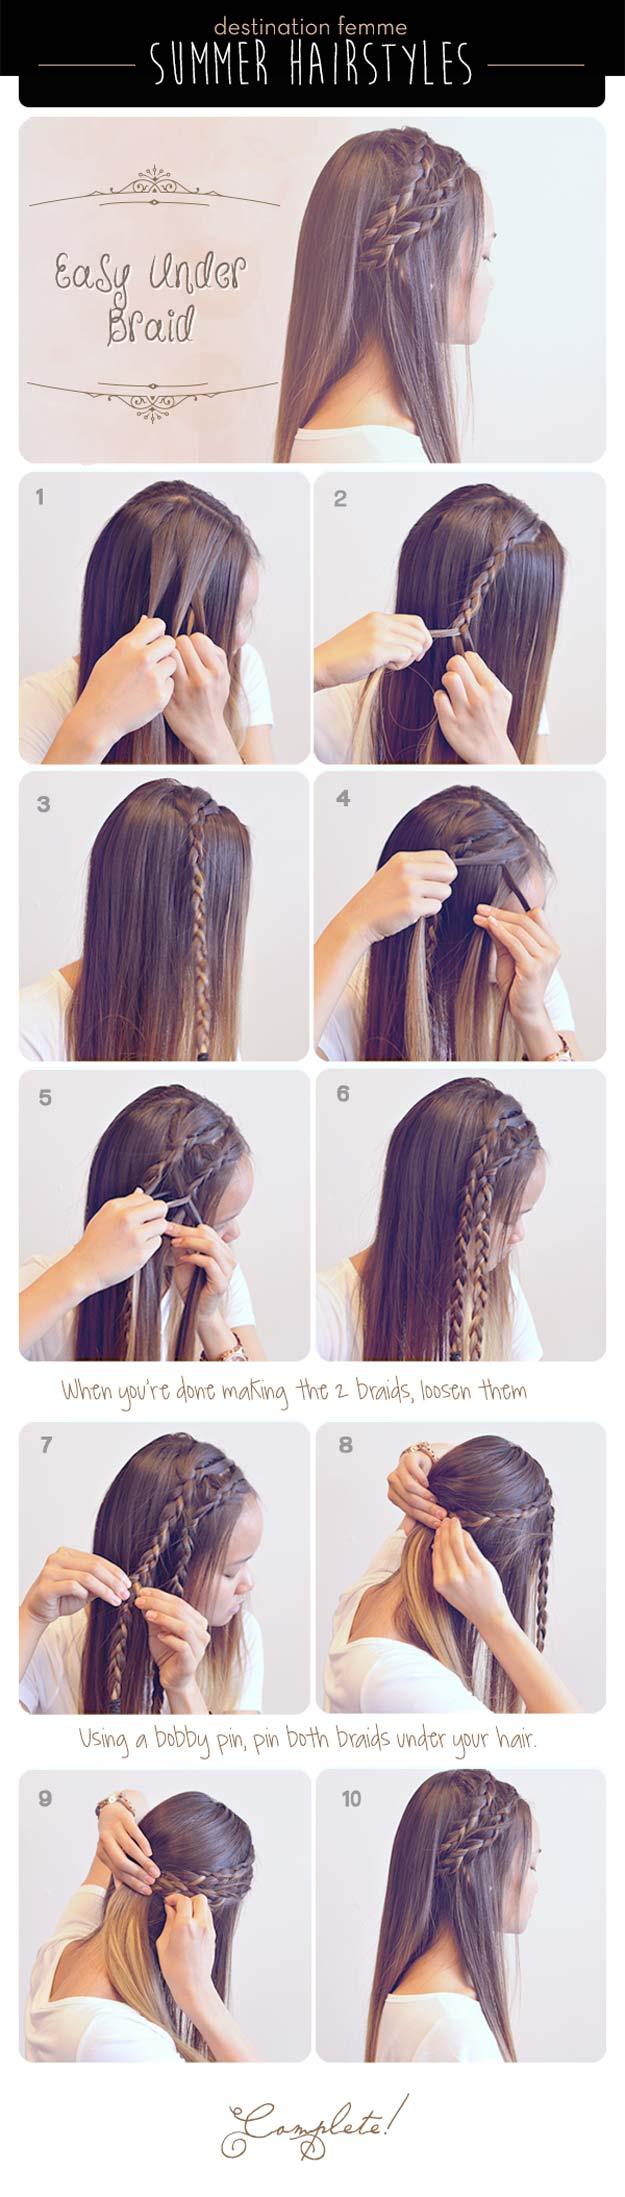 Fabulous 40 Of The Best Cute Hair Braiding Tutorials Diy Projects For Teens Hairstyle Inspiration Daily Dogsangcom